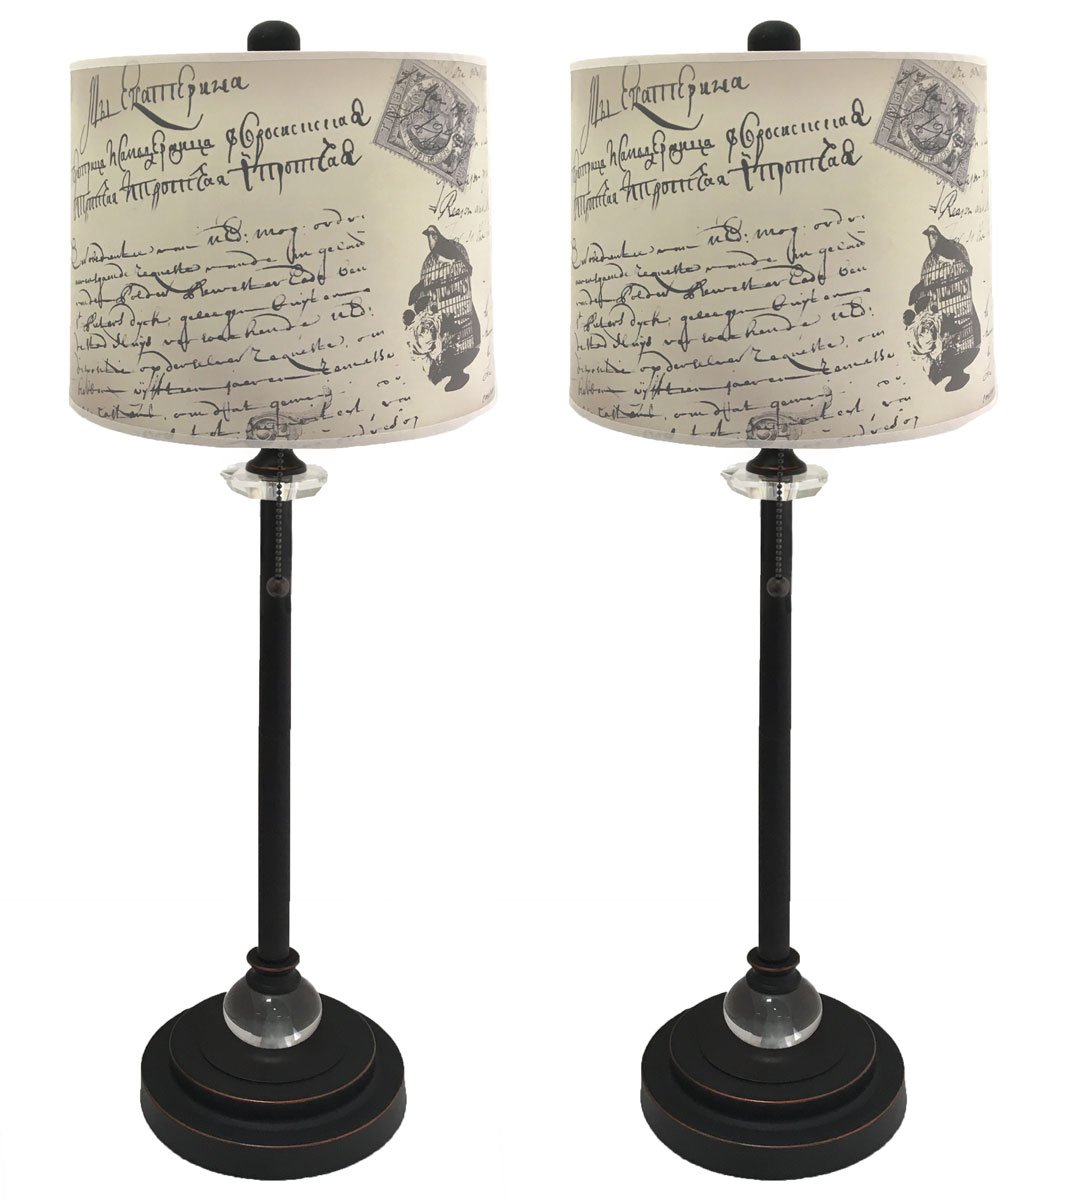 Royal Designs 28'' Crystal and Oil Rub Bronze Buffet Lamp with Vintage Letter Caligraphy Design Hard Back Lamp Shade, Set of 2 by Royal Designs, Inc